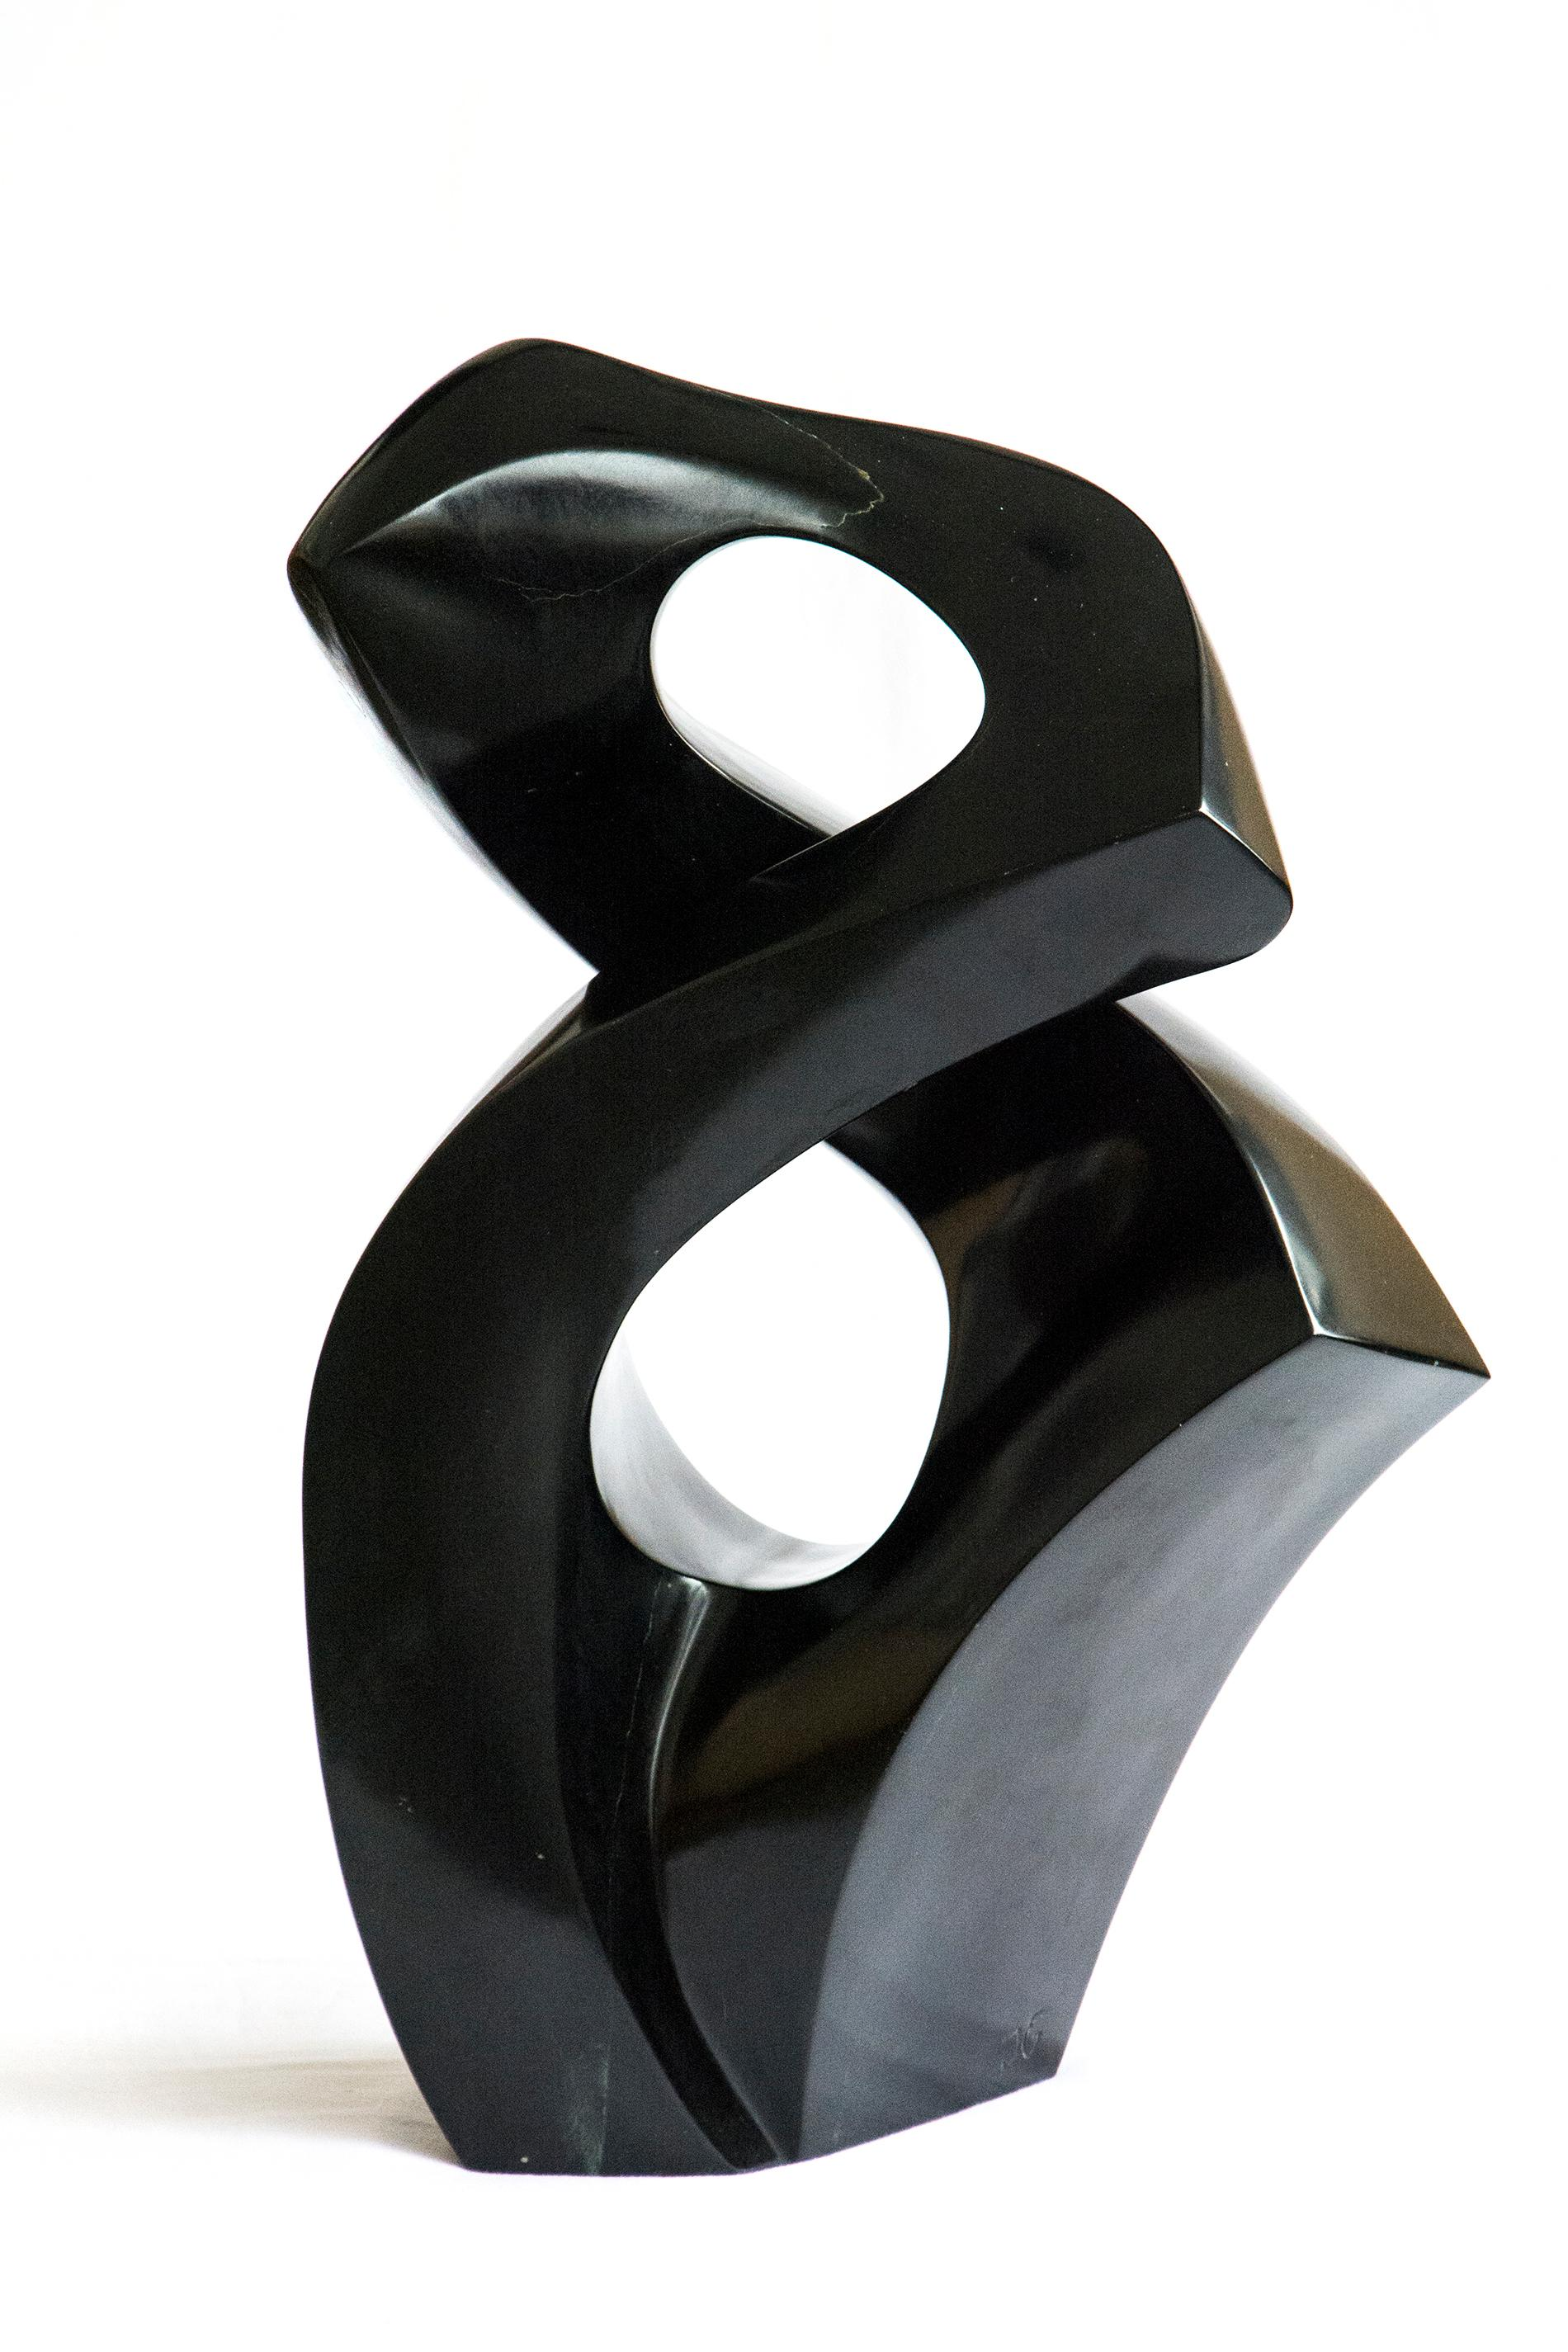 Embrace - small, smooth, polished, abstract, black marble sculpture